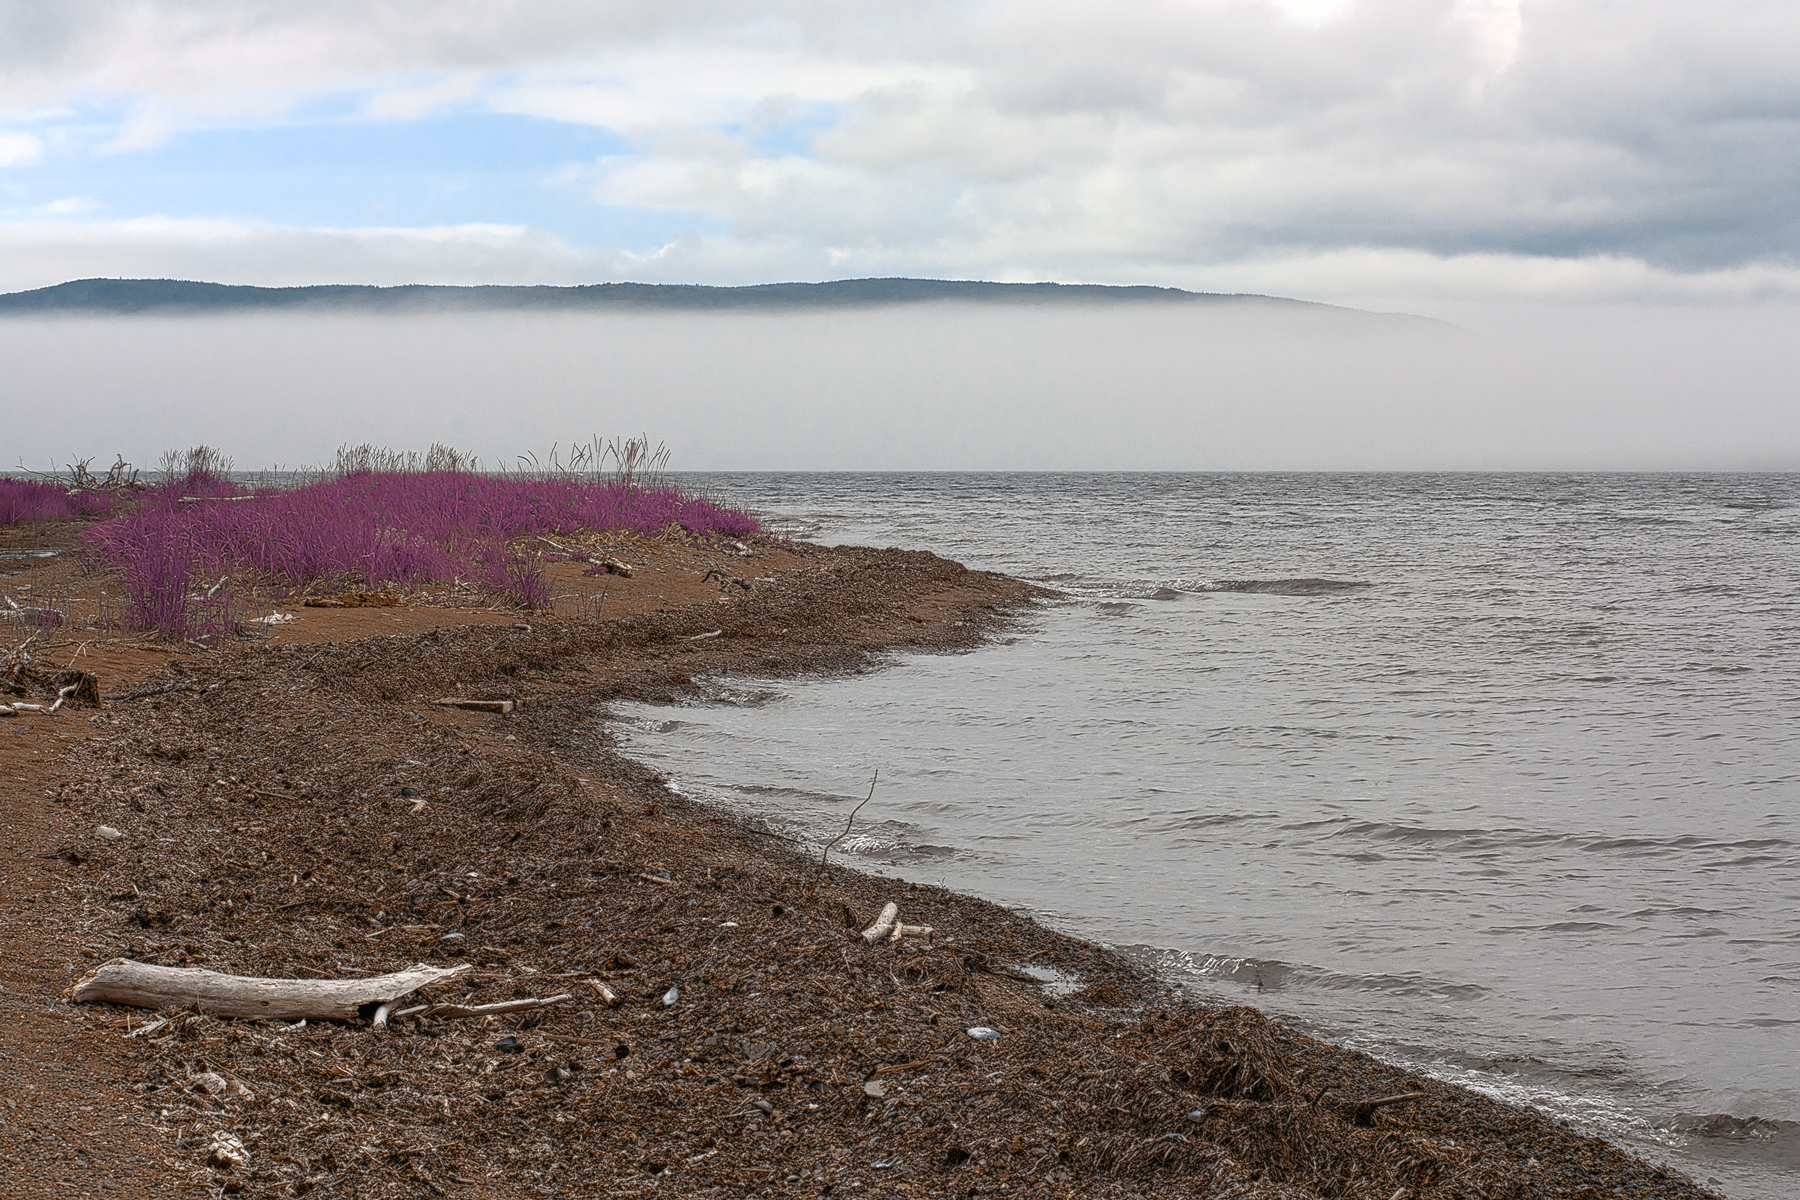 Misty Cabot Trail Scenery - Lavender Pur, Angle, Overcast, Res, Raymond, HQ Photo